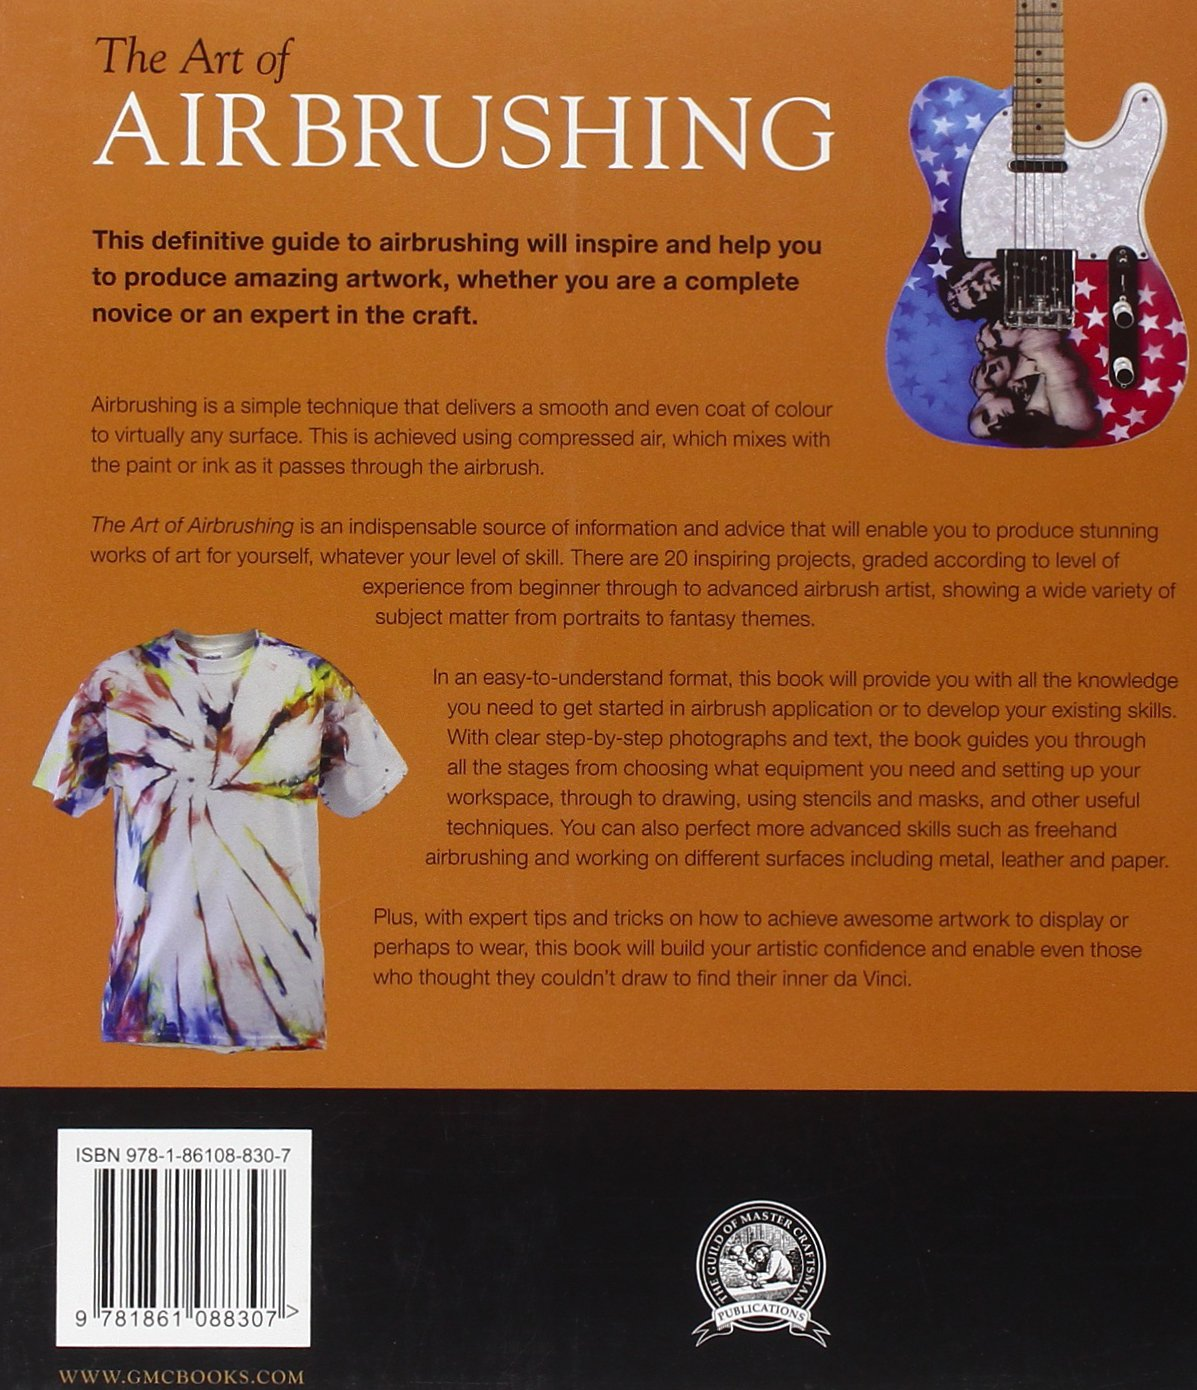 The art of airbrushing a simple guide to mastering the craft the art of airbrushing a simple guide to mastering the craft giorgio uccellini 9781861088307 amazon books solutioingenieria Gallery